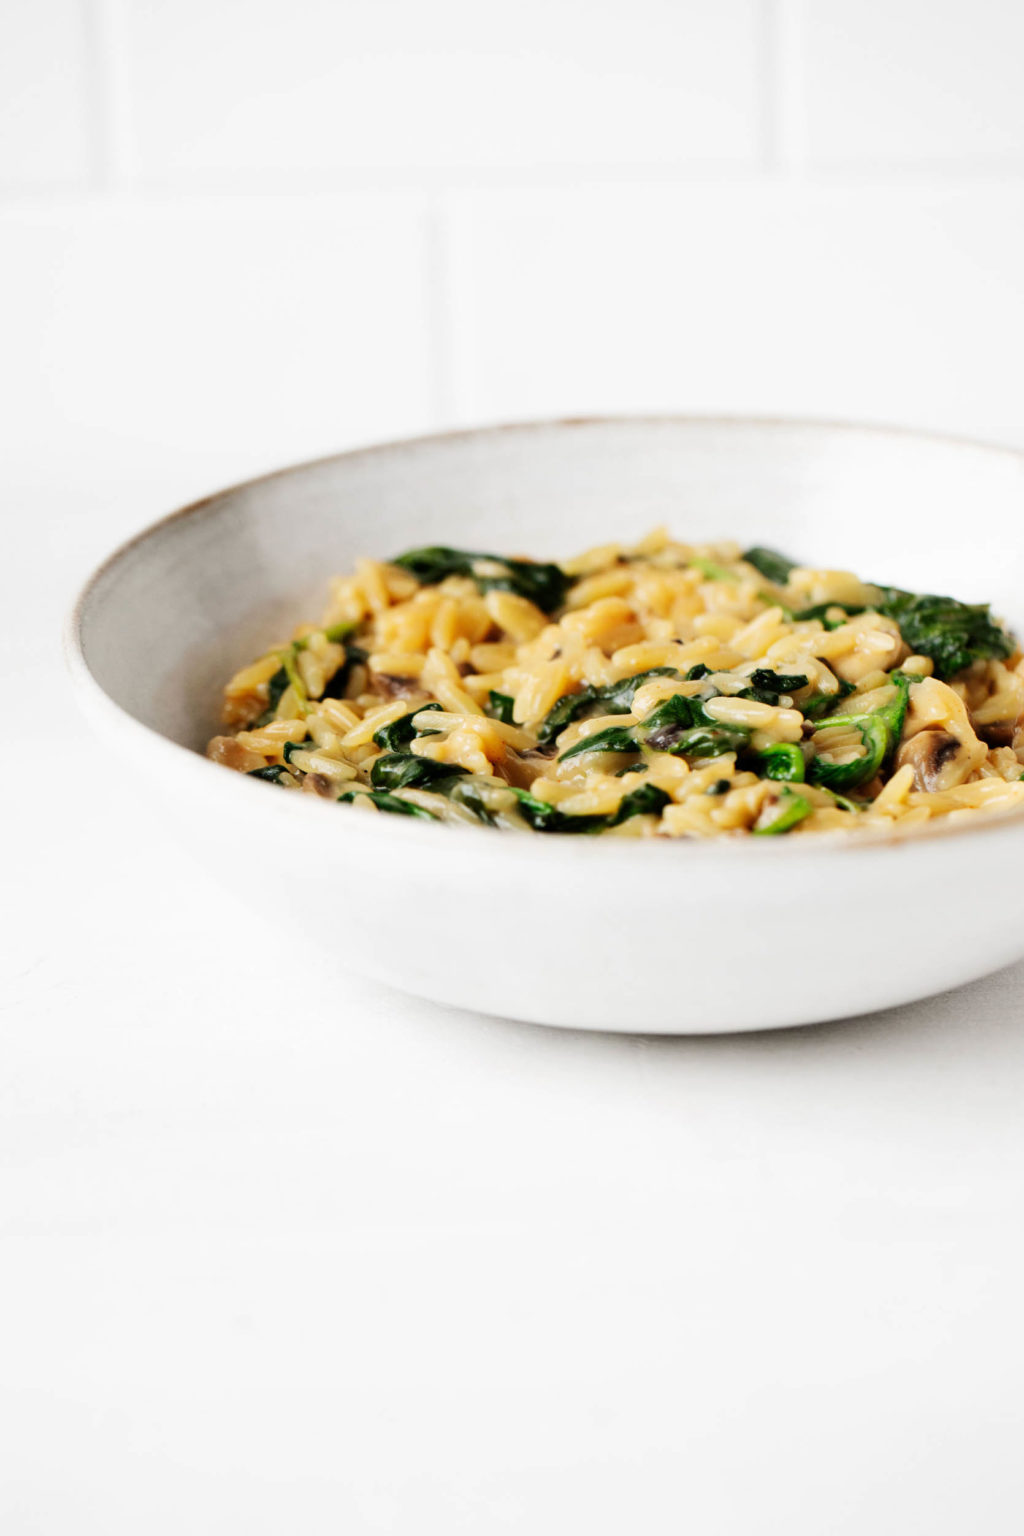 A round, white bowl has been filled with orzo and spinach. It's resting on a bright white surface.